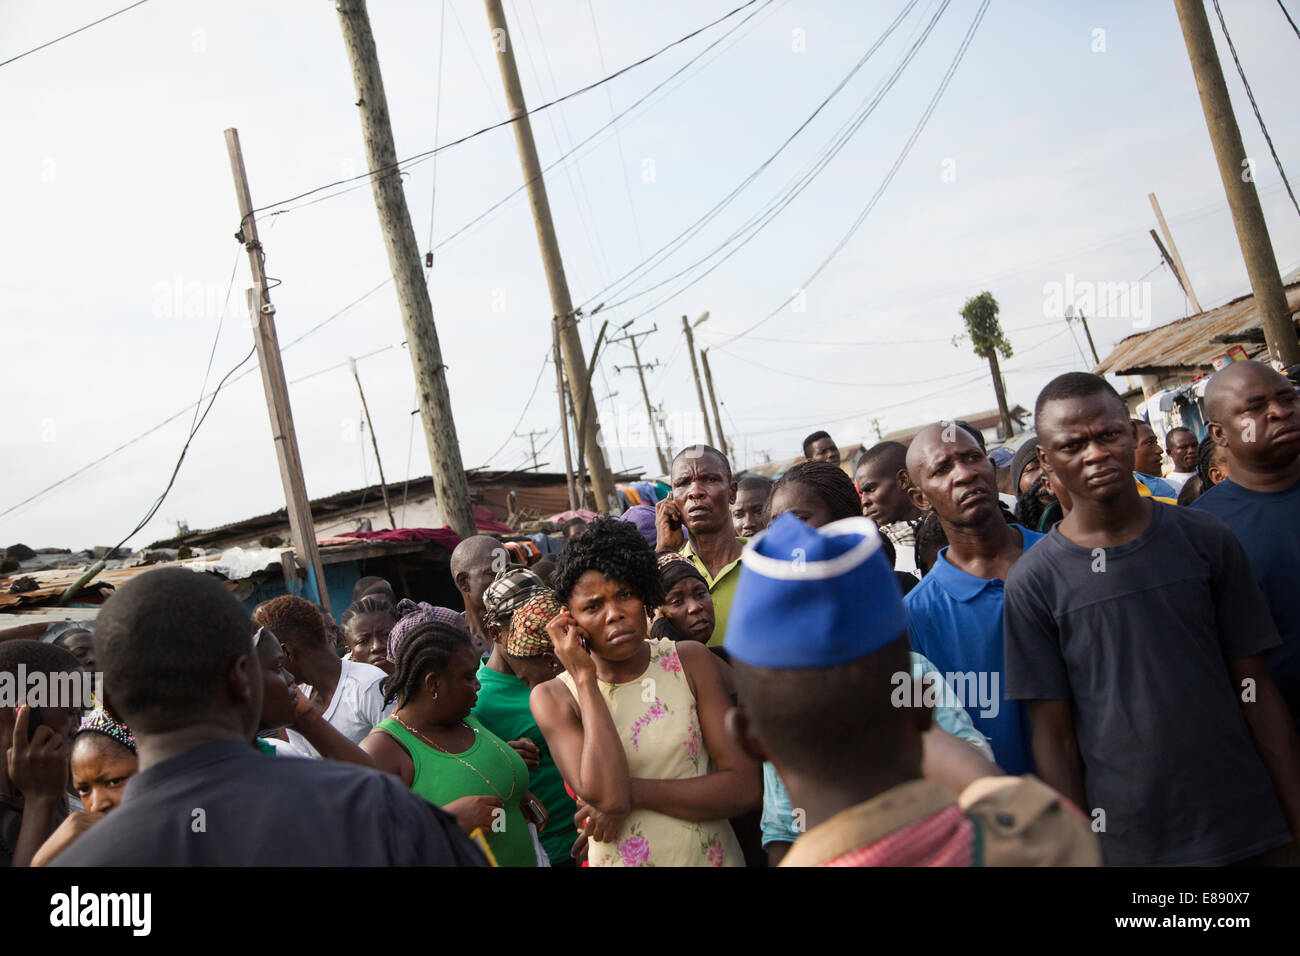 West Point residents wait at the edge of the quarantine. West Point is a district of Monrovia Liberia quarantined - Stock Image